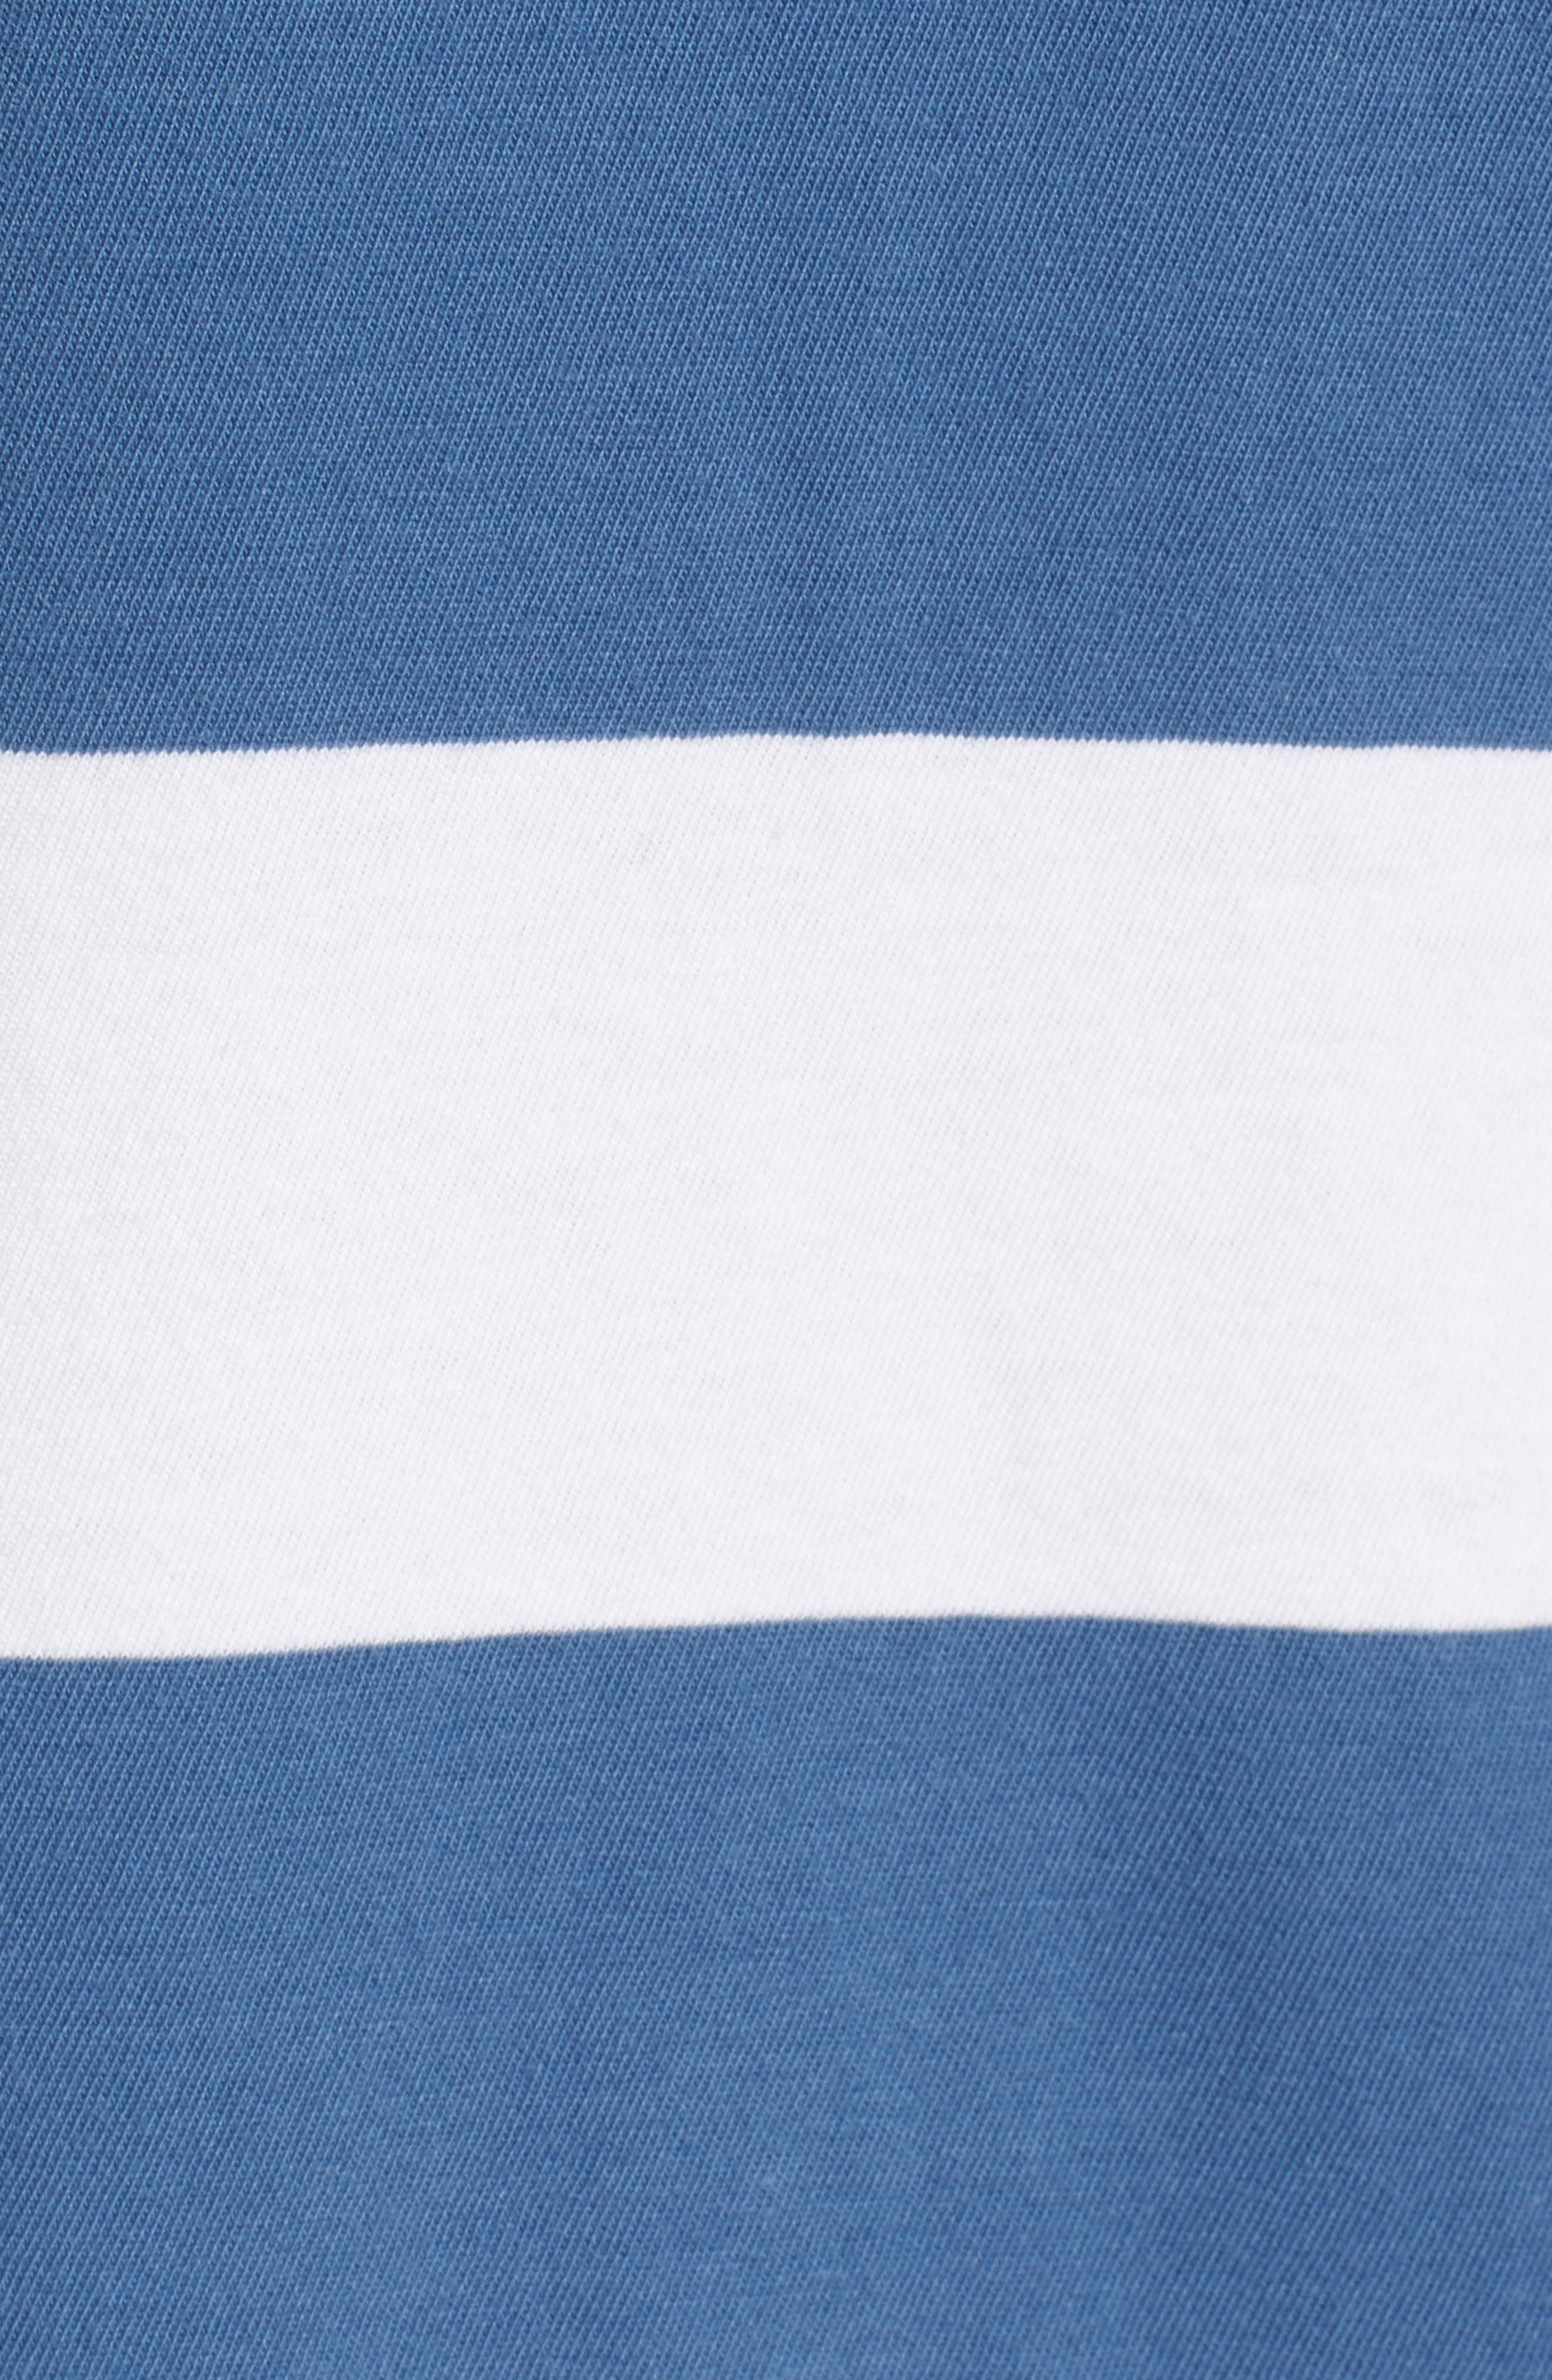 Rugby Stripe Tank,                             Alternate thumbnail 5, color,                             400